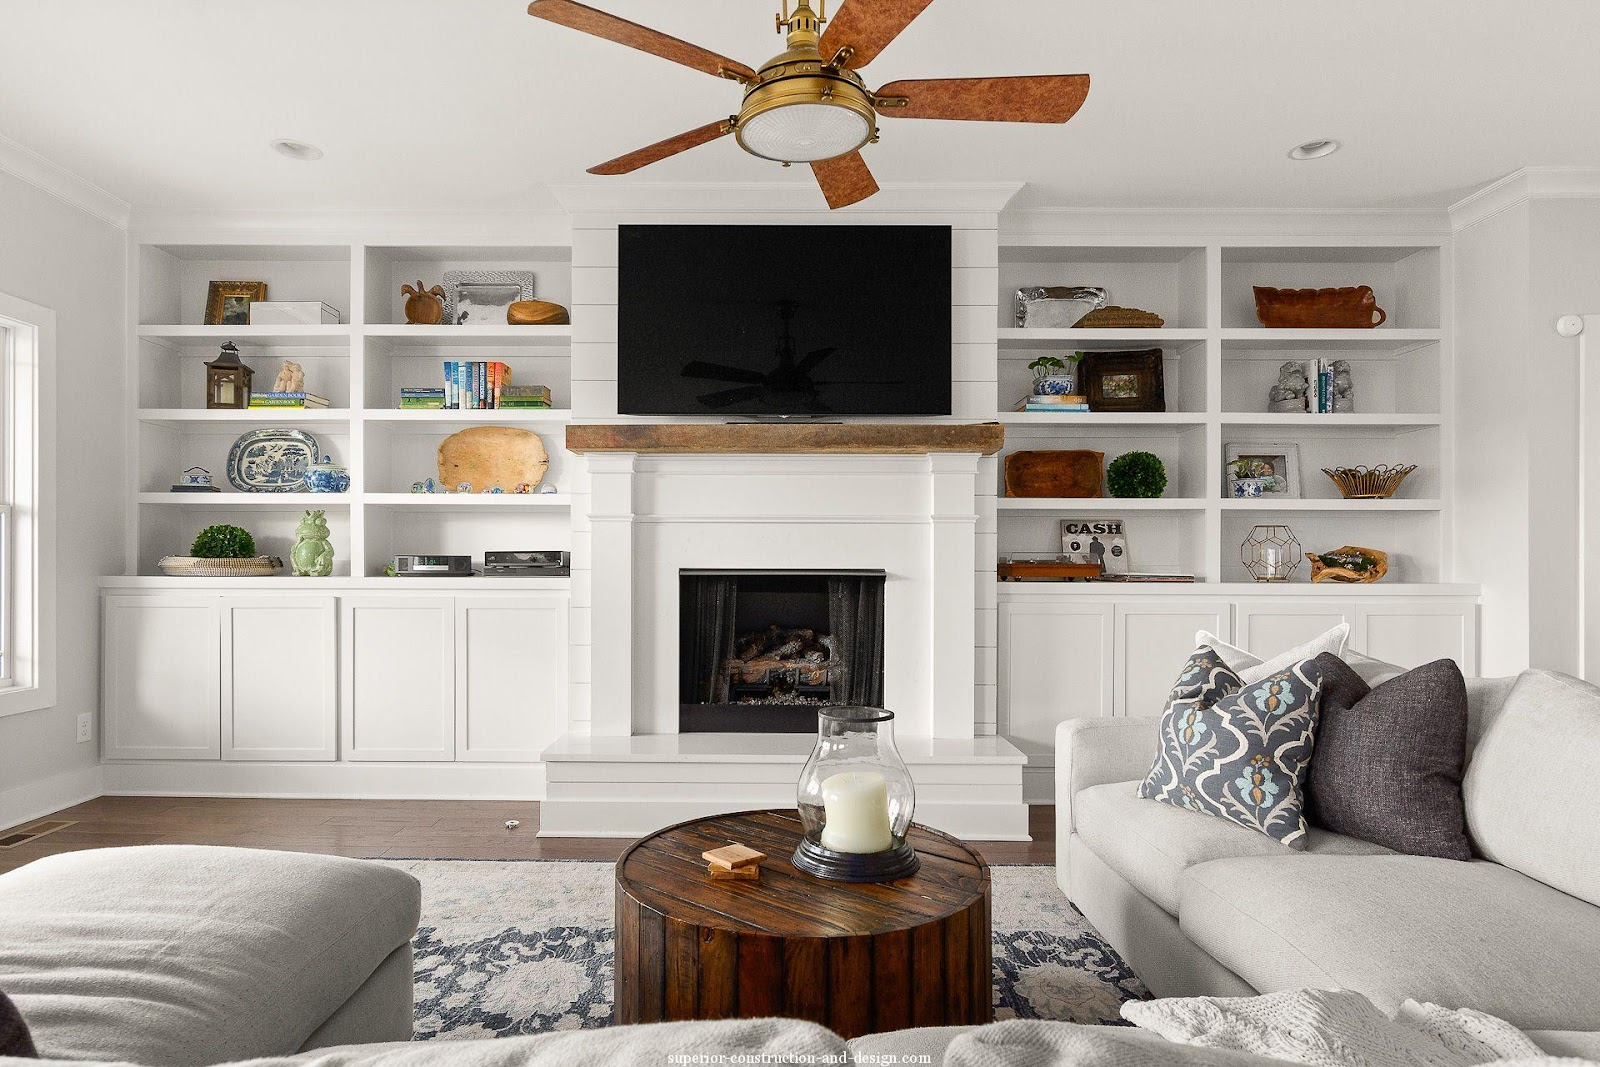 family room sofa built-in decorated with accessories traditional farmhouse twist